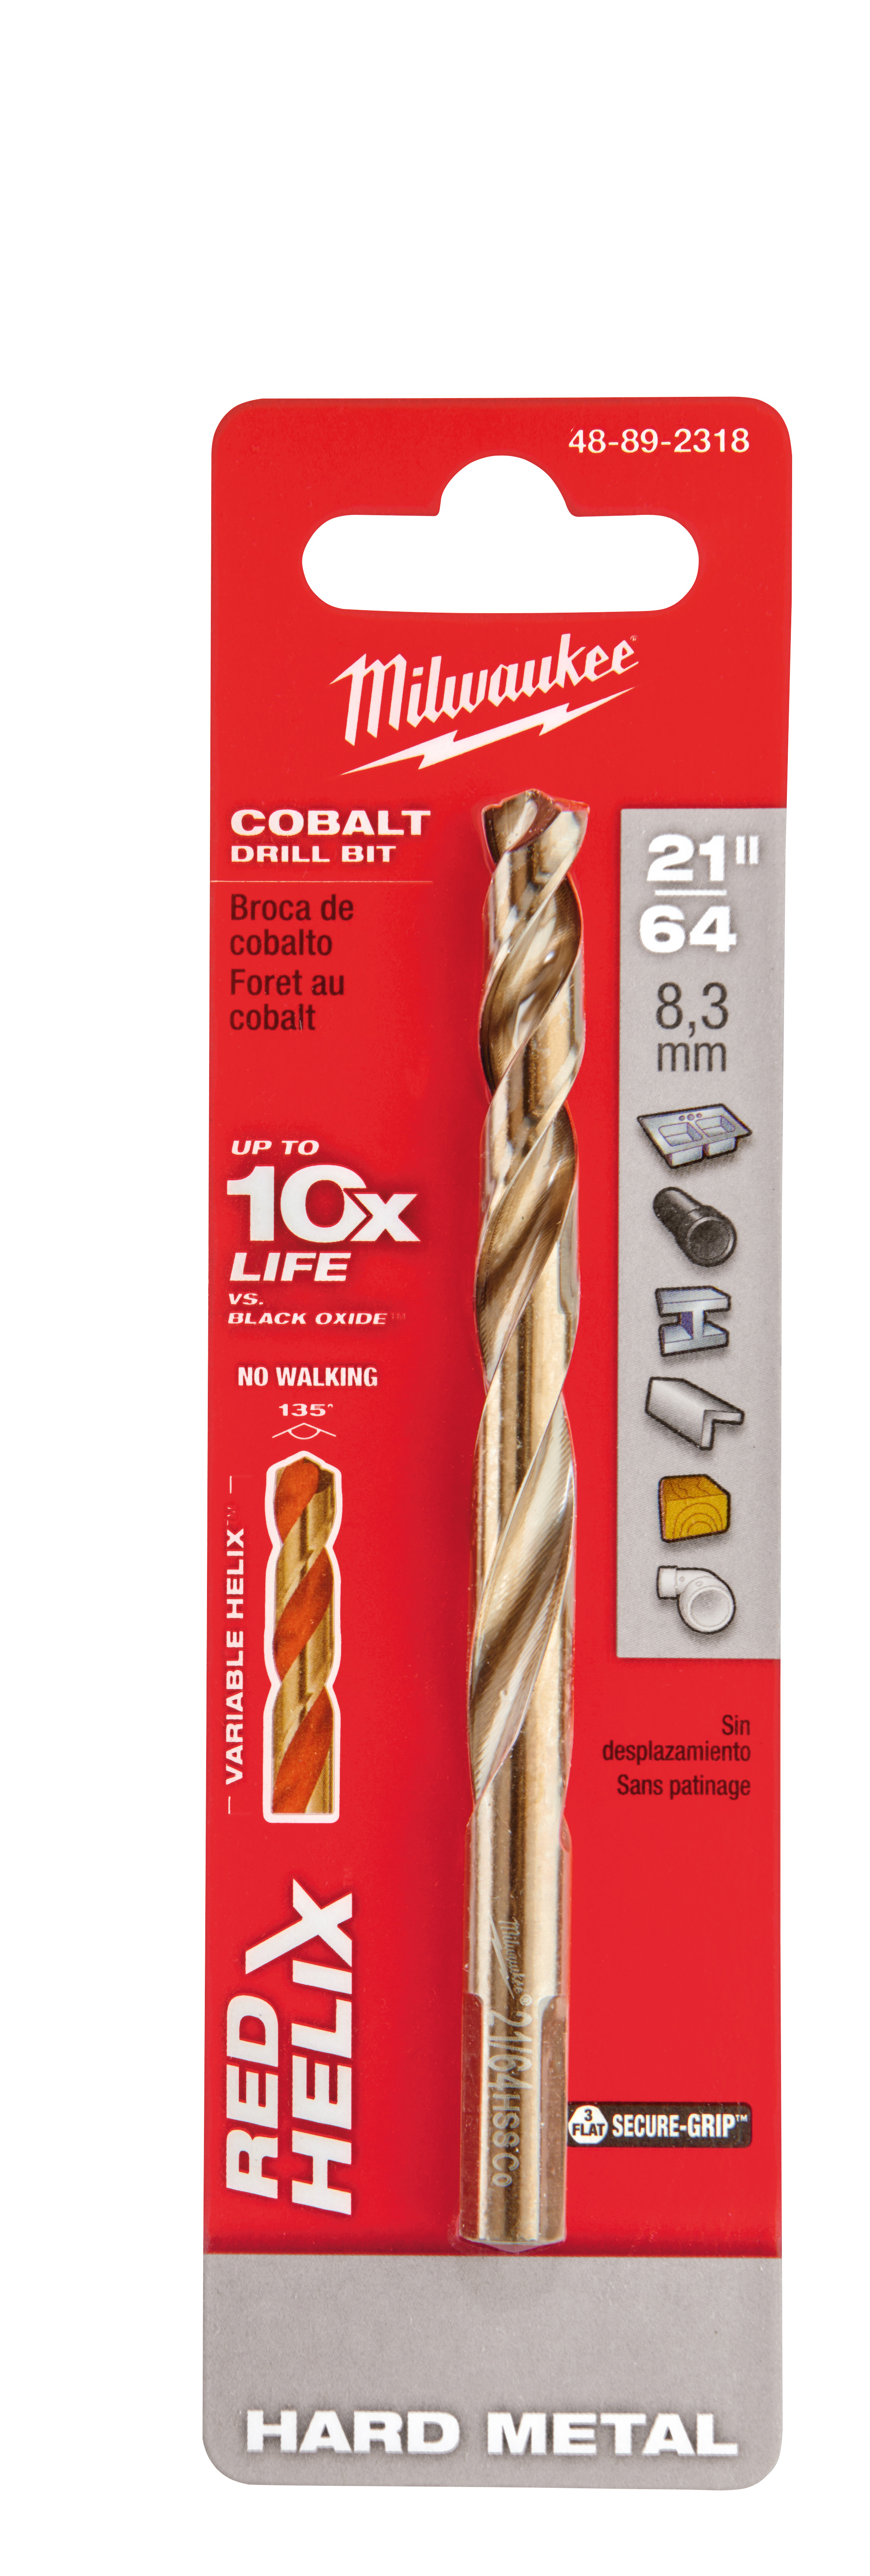 Milwaukee® 48-89-2318 RED HELIX™ Jobber Length Twist Drill Bit, 21/64 in Drill - Fraction, 0.3281 in Drill - Decimal Inch, 135 deg Point, High Speed Cobalt, Uncoated